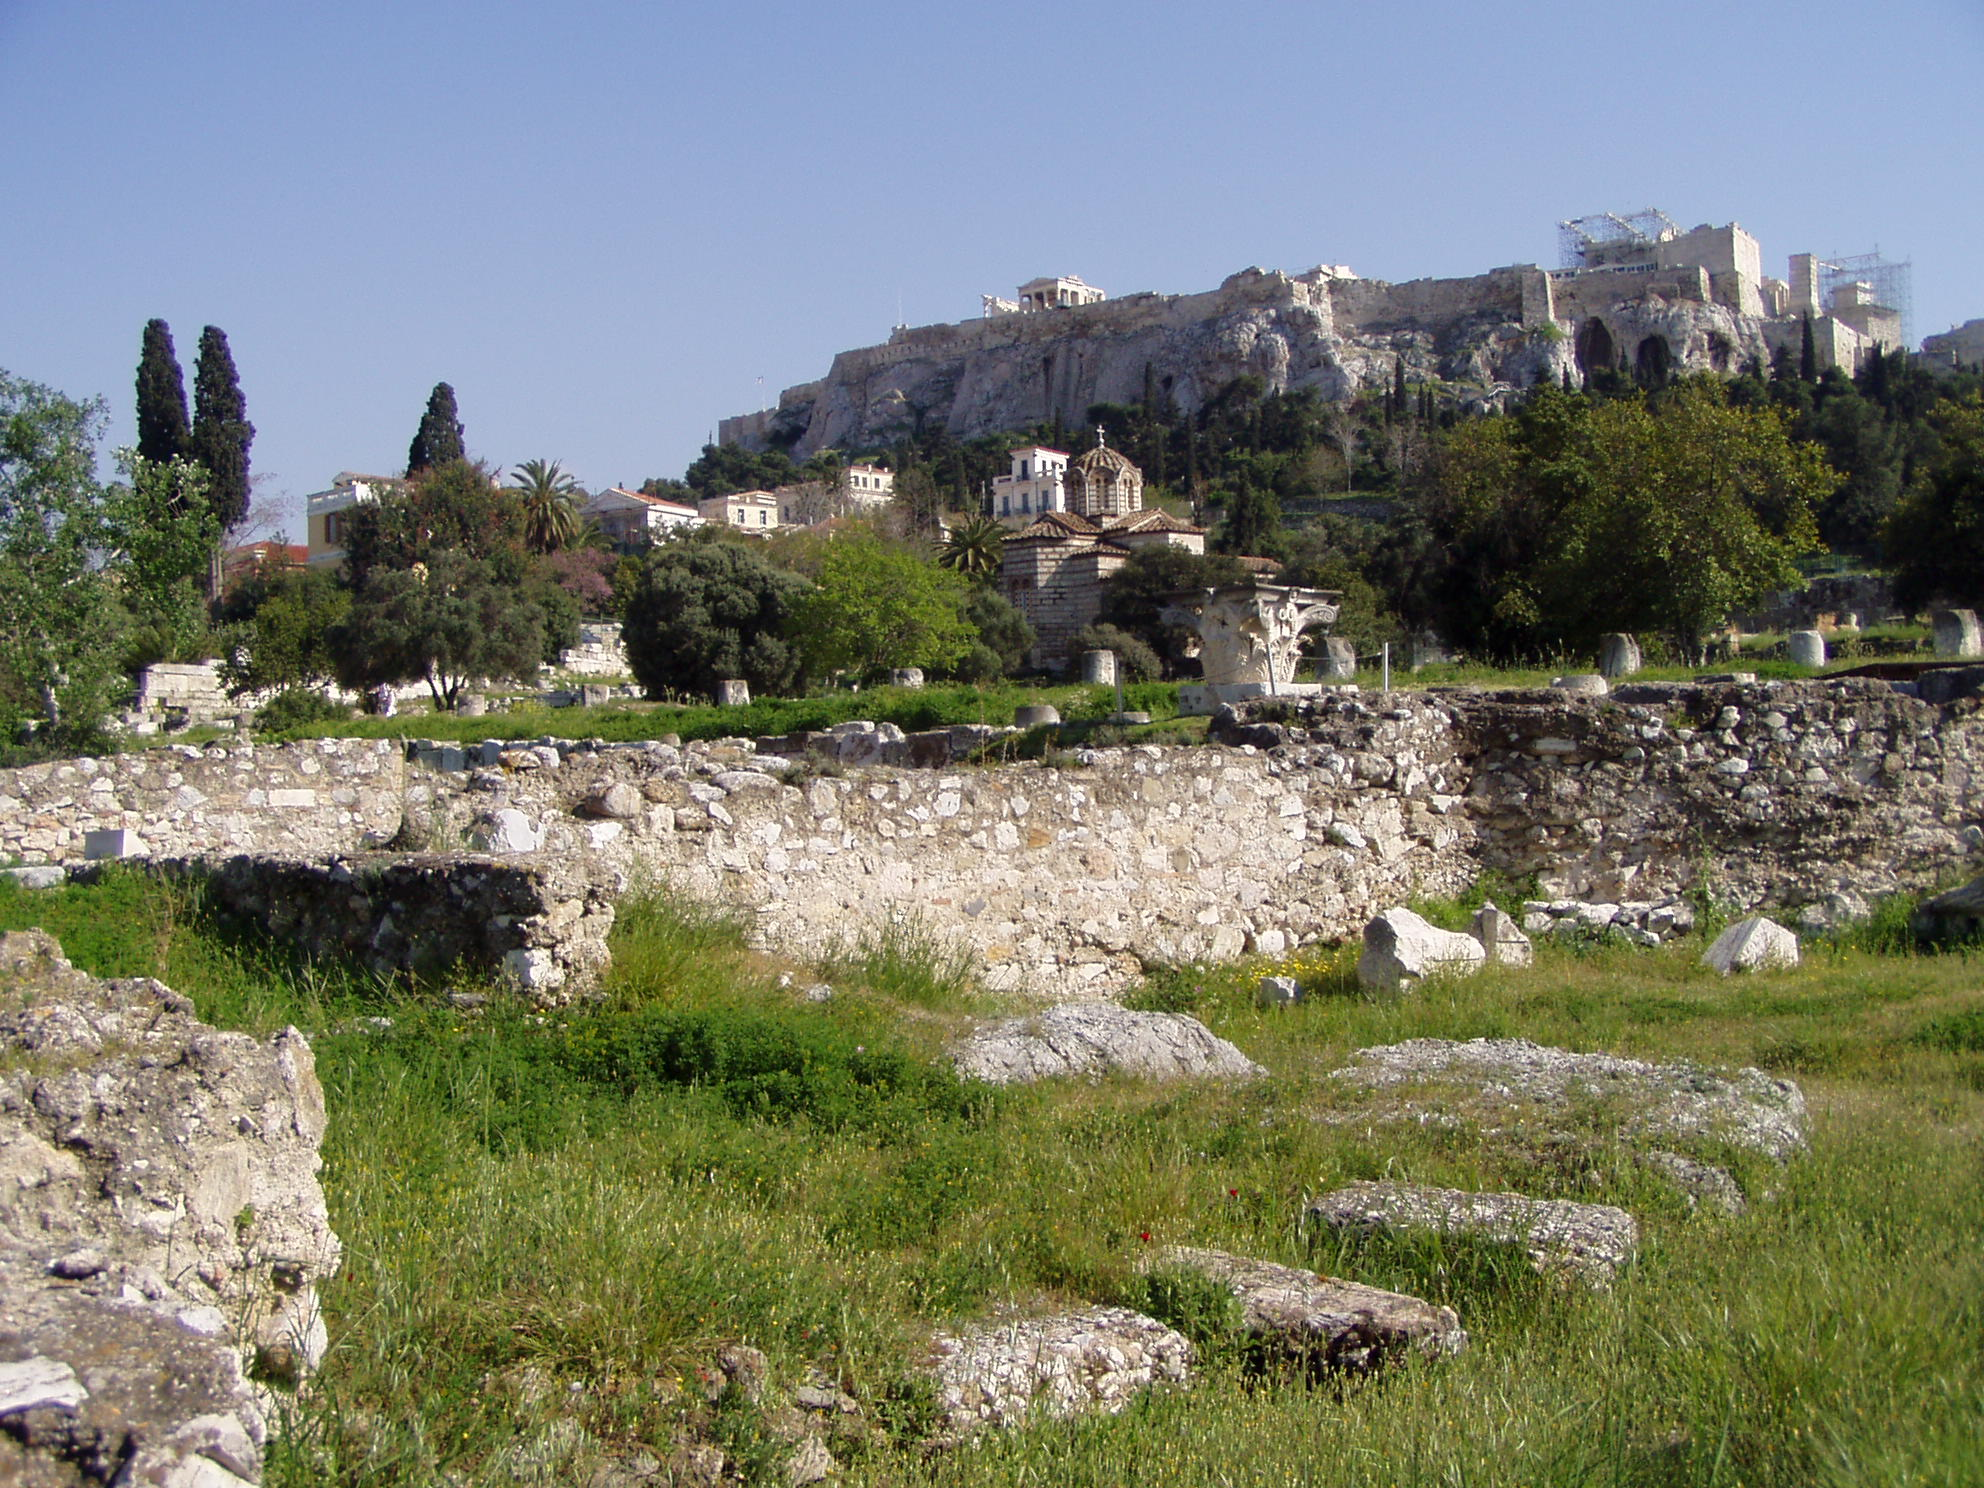 File:Ancient Agora of Athens 5.jpg - Wikimedia Commons